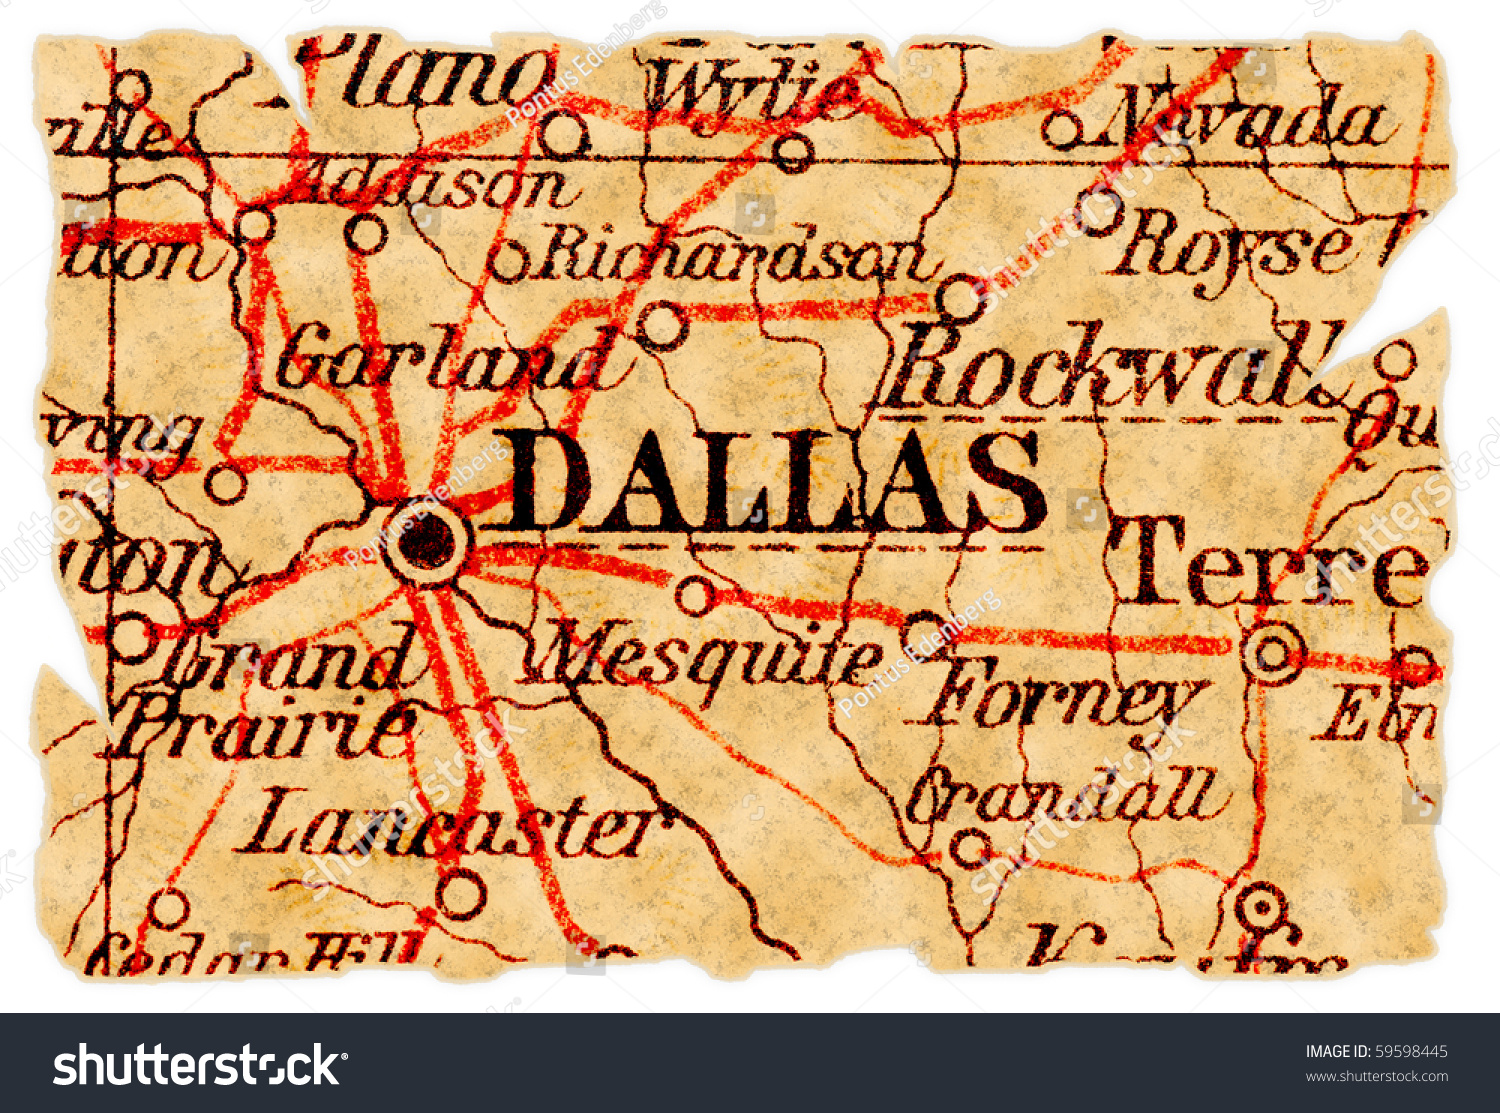 Buy Old Dallas Texas Map Vintage Historical Map Antique: Dallas, Texas On An Old Torn Map From 1949, Isolated. Part